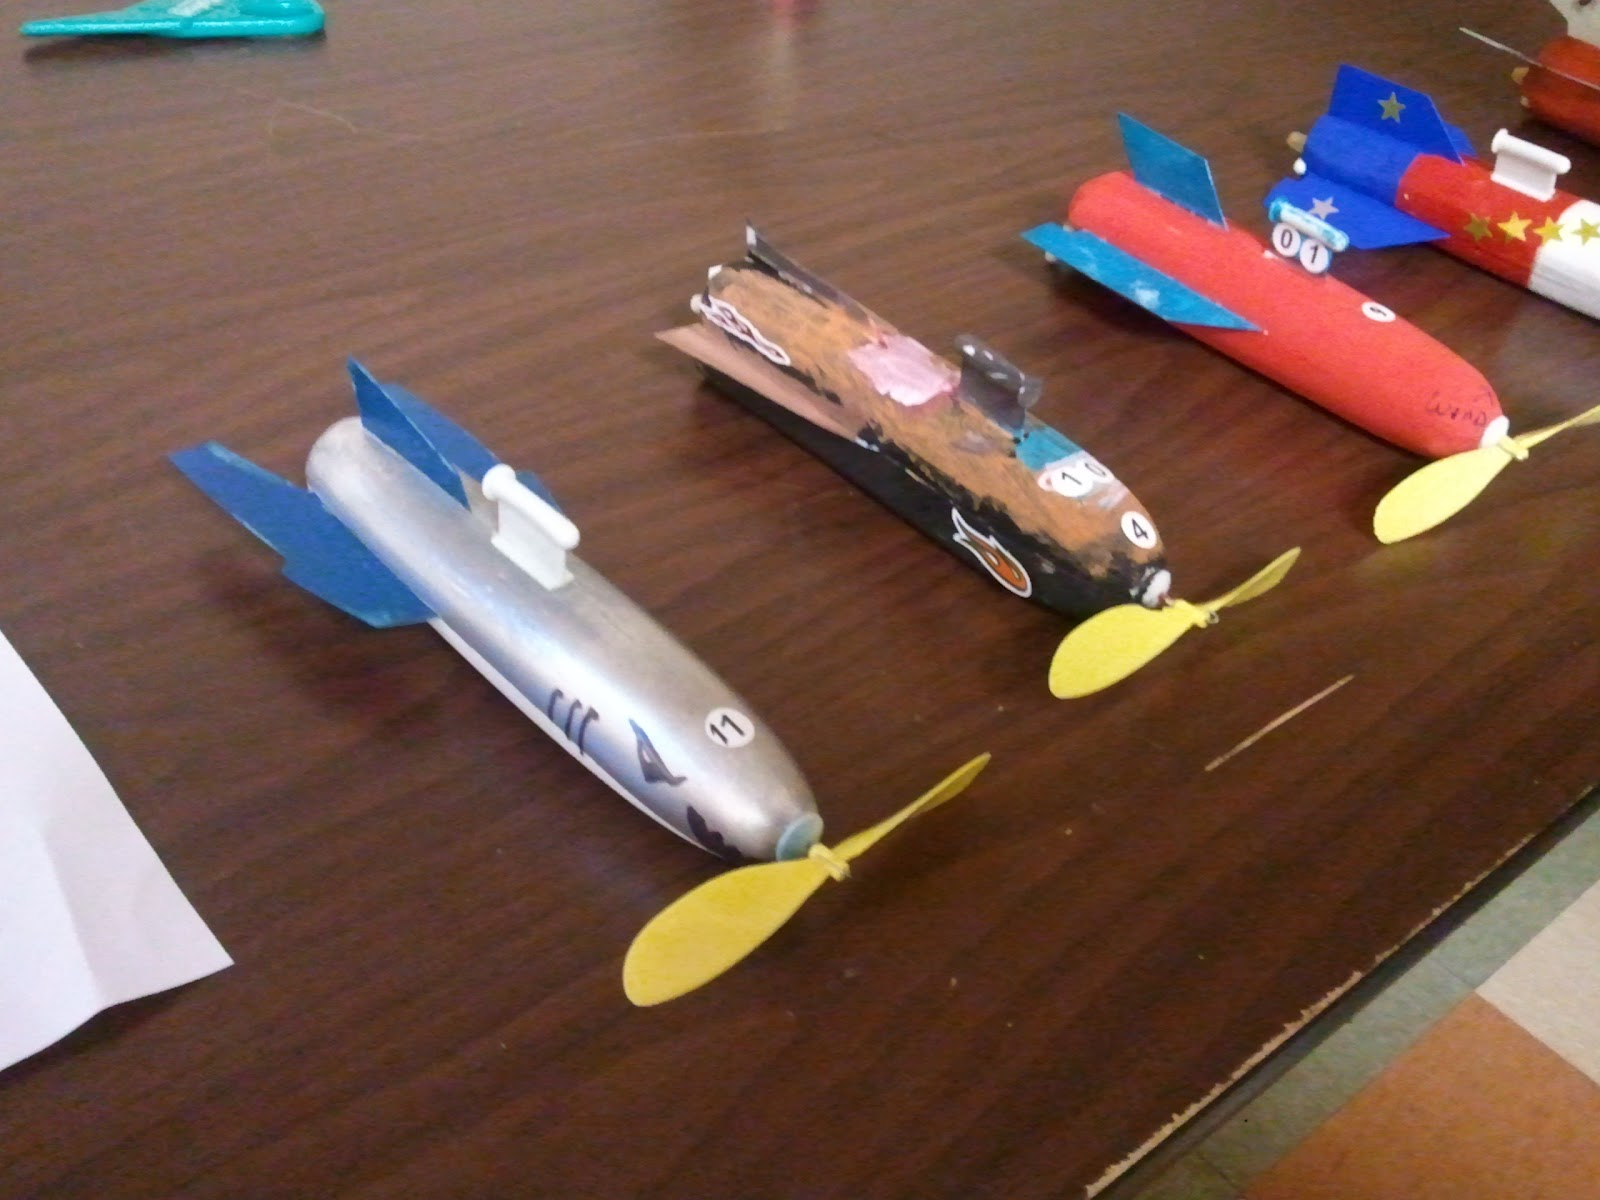 Cub Scout Space Derby Rocket Ideas (page 3) - Pics about space